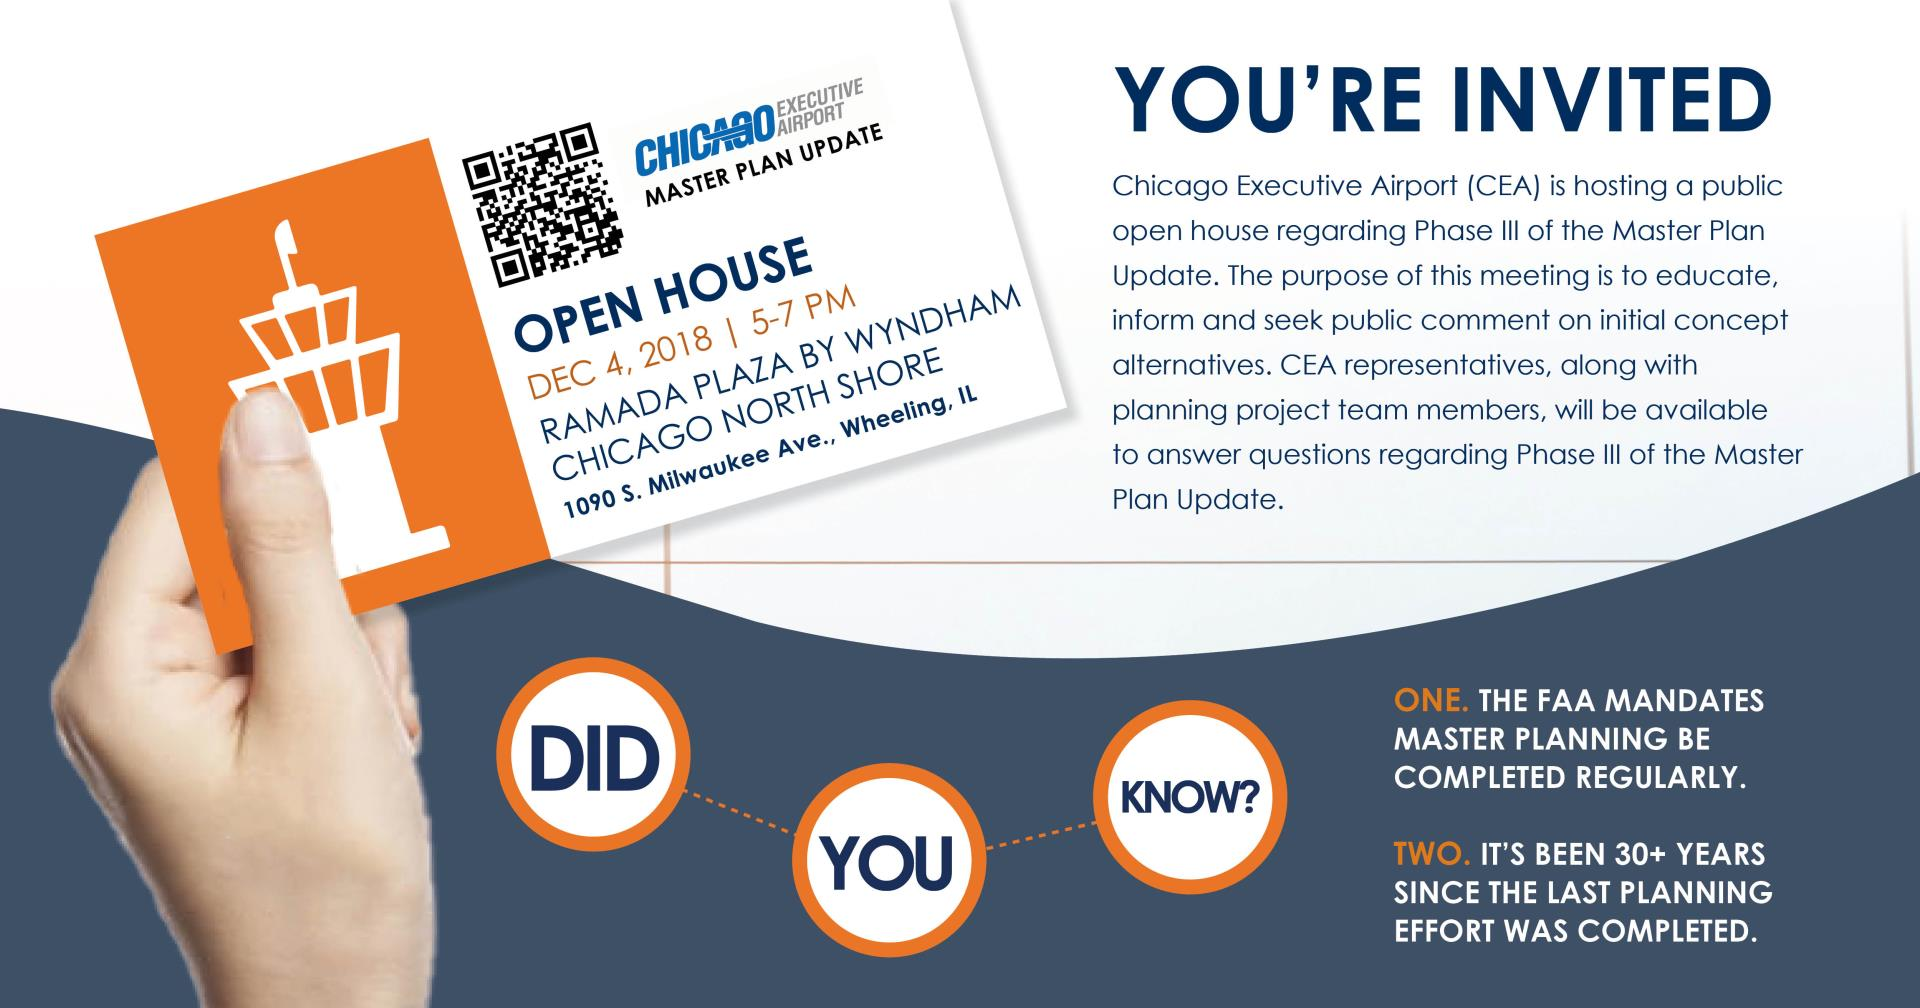 Chicago Executive Airport to Host Public Open House